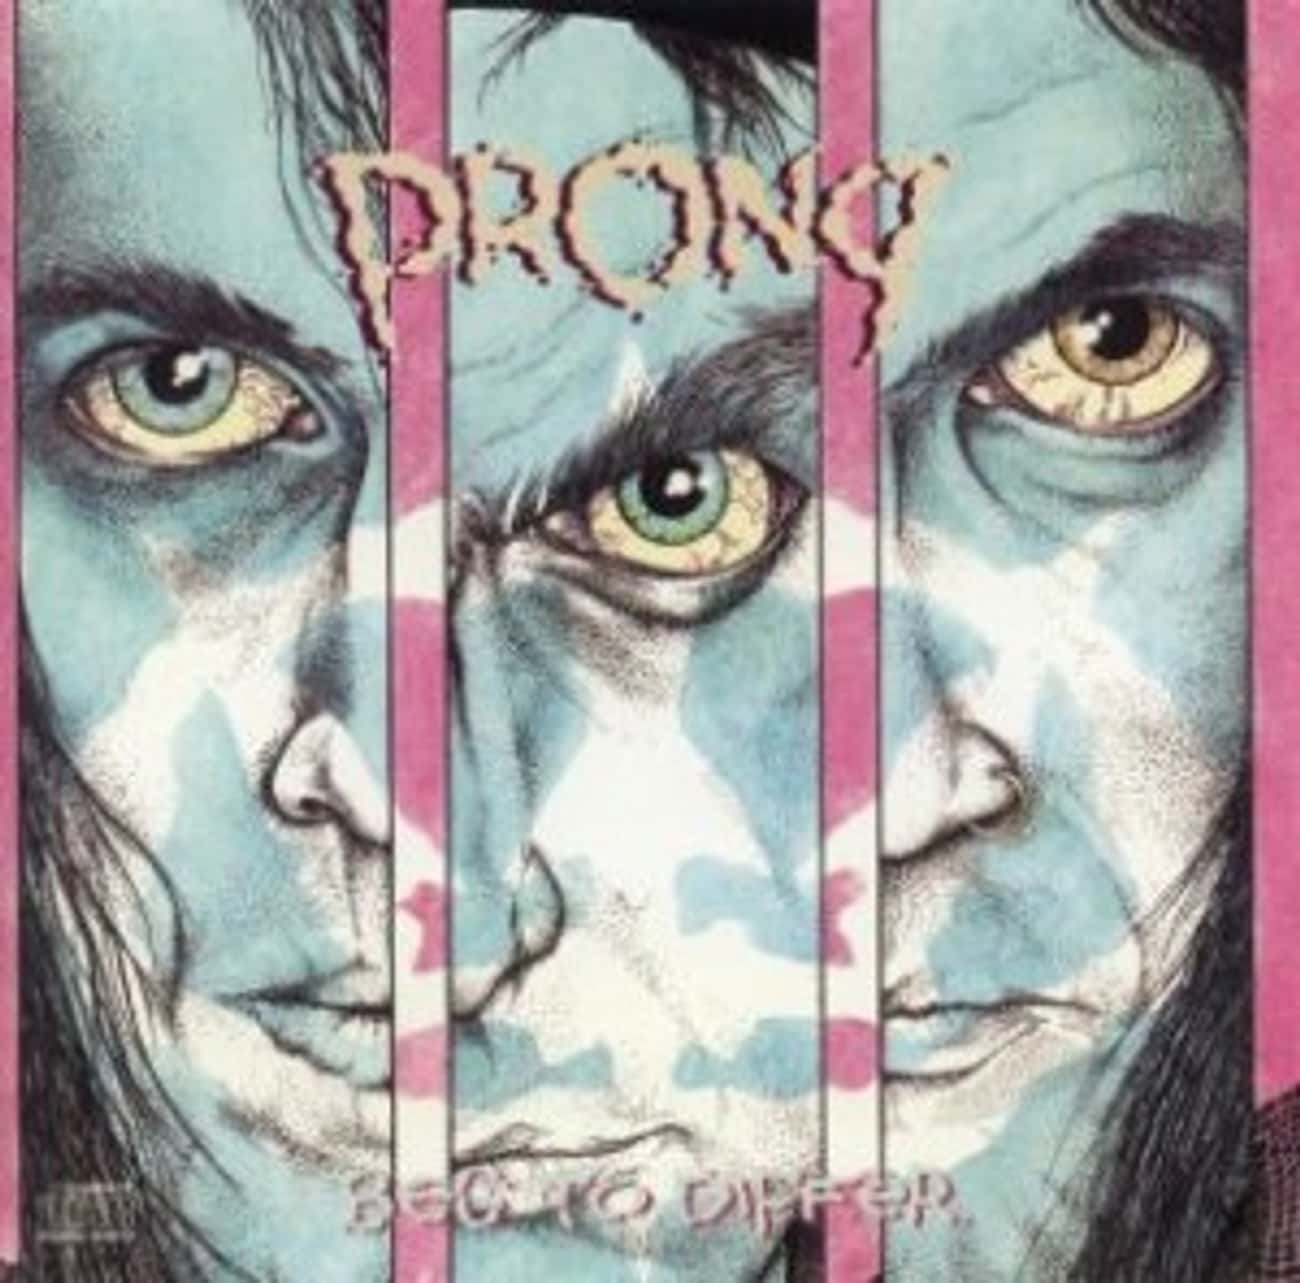 Beg to Differ is listed (or ranked) 3 on the list The Best Prong Albums of All Time